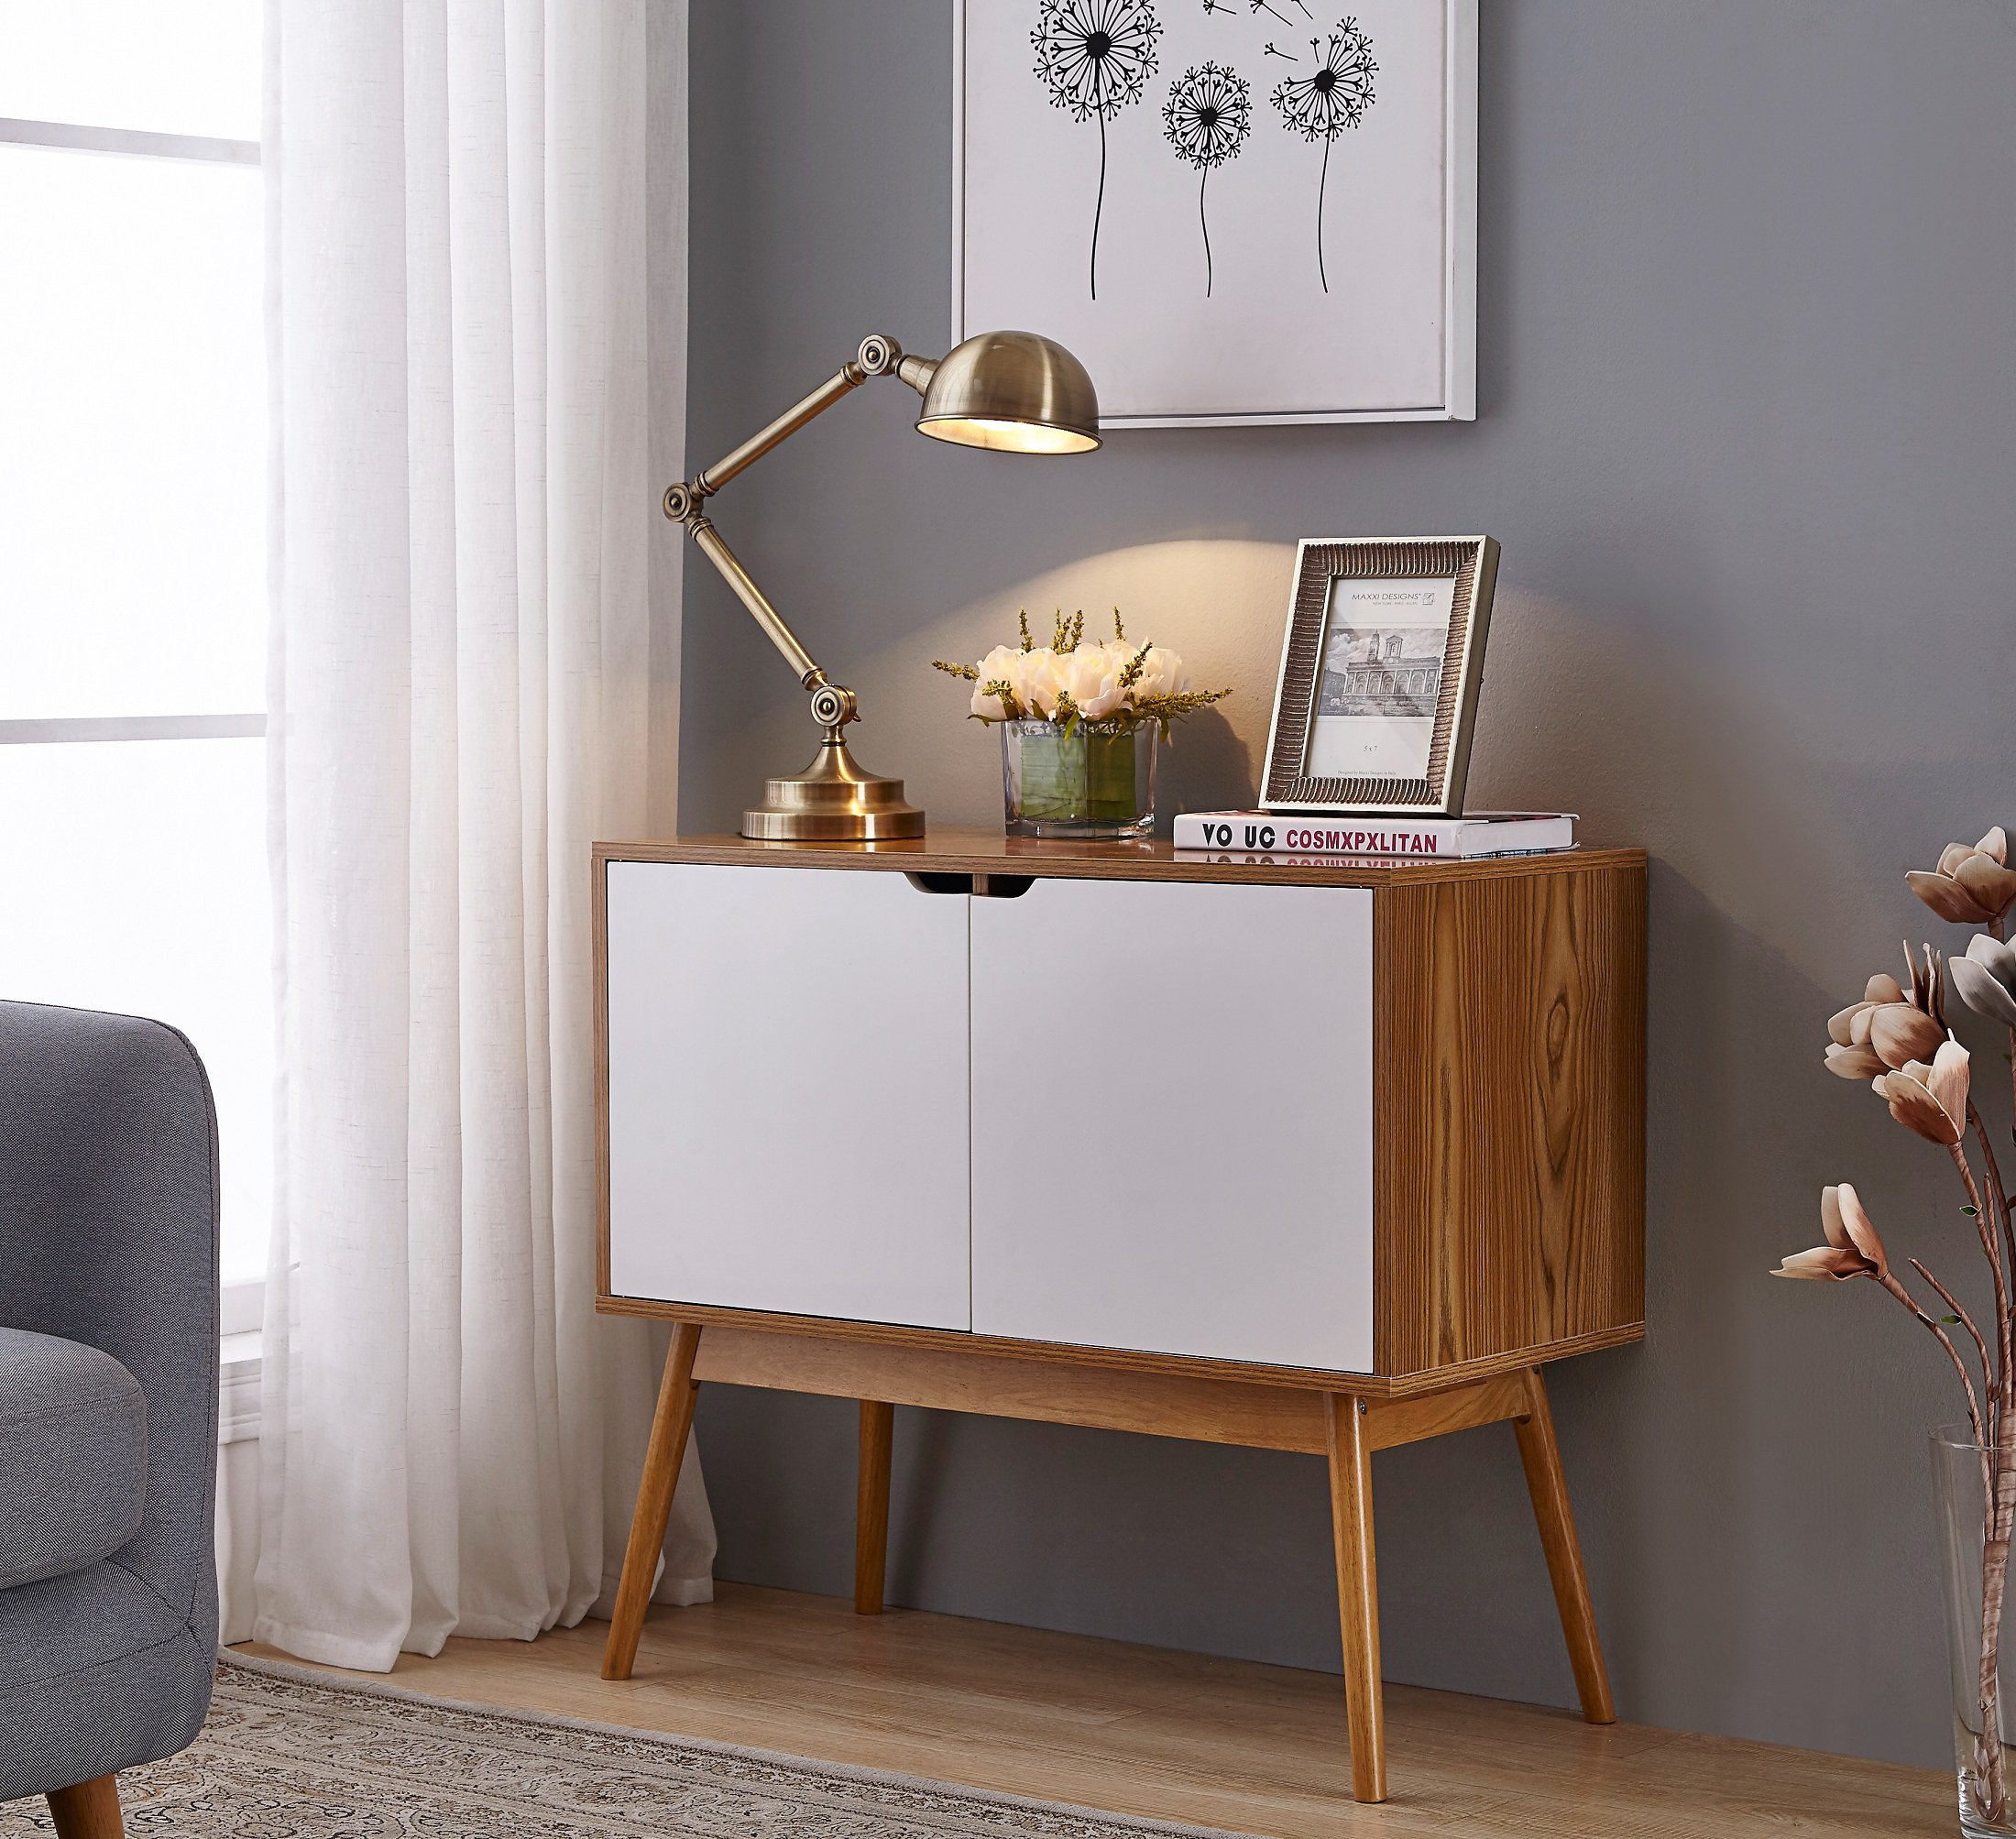 Get Quotations White Woodgrain Mid Century Style Console Sofa Table Storage Cabinet Sideboard With 2 Doors